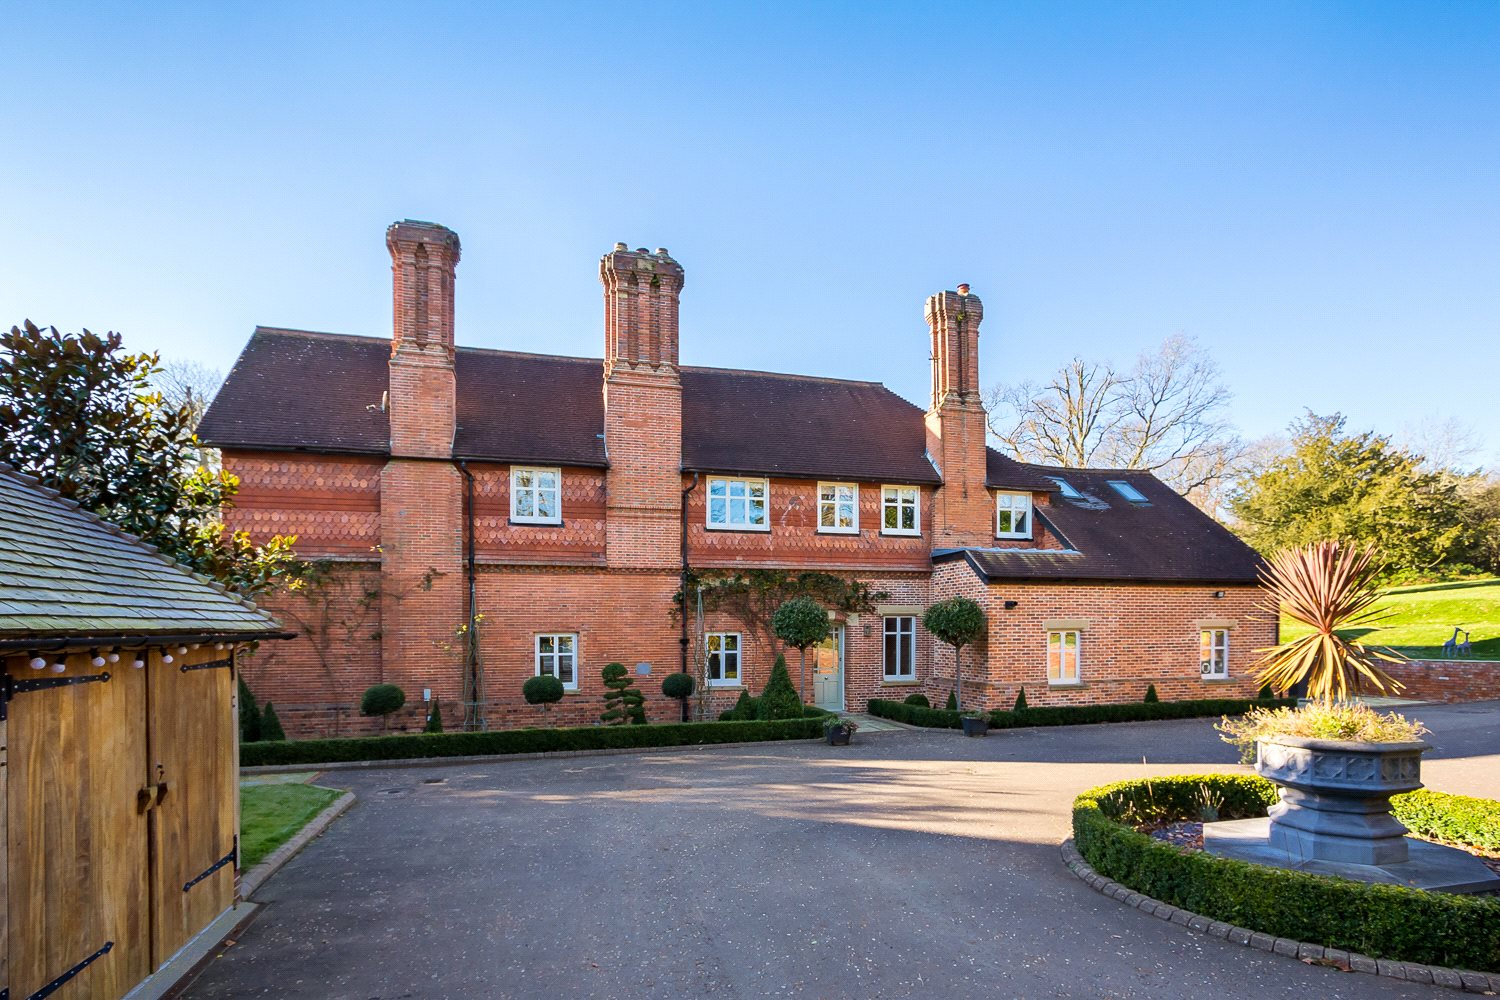 Villa per Vendita alle ore Crawley Lane, Balcombe, Haywards Heath, West Sussex, RH17 Haywards Heath, Inghilterra